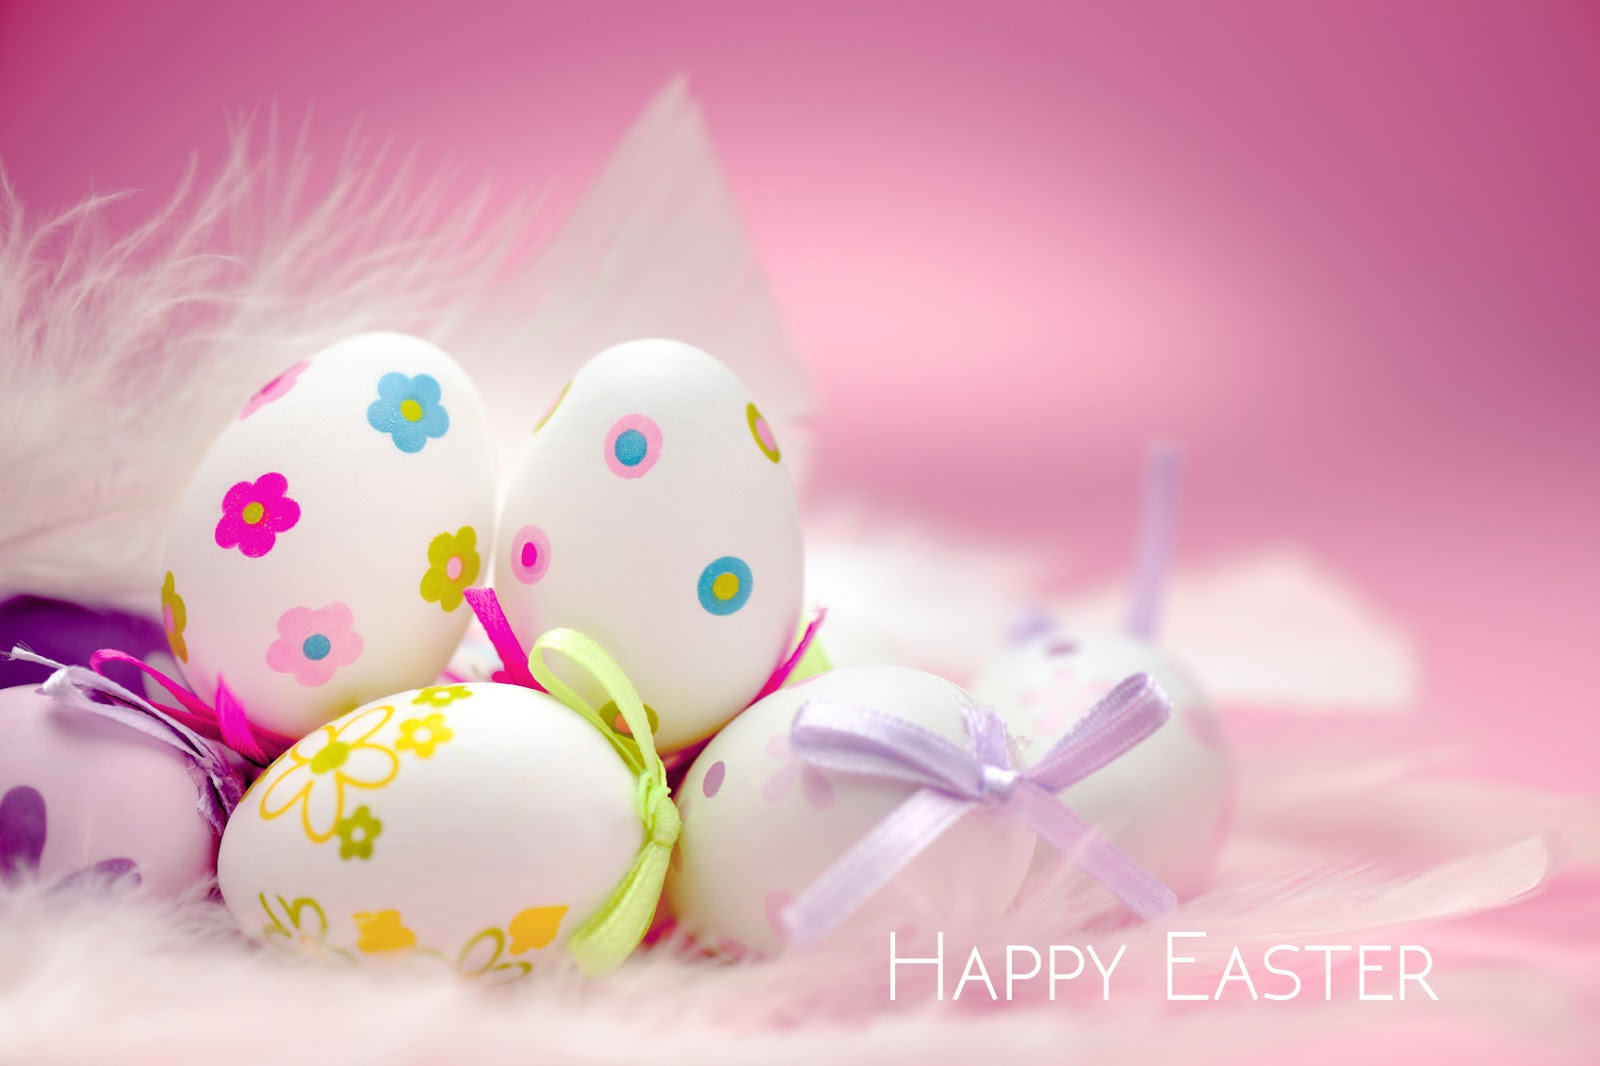 Happy easter 2021 HD images Free Download